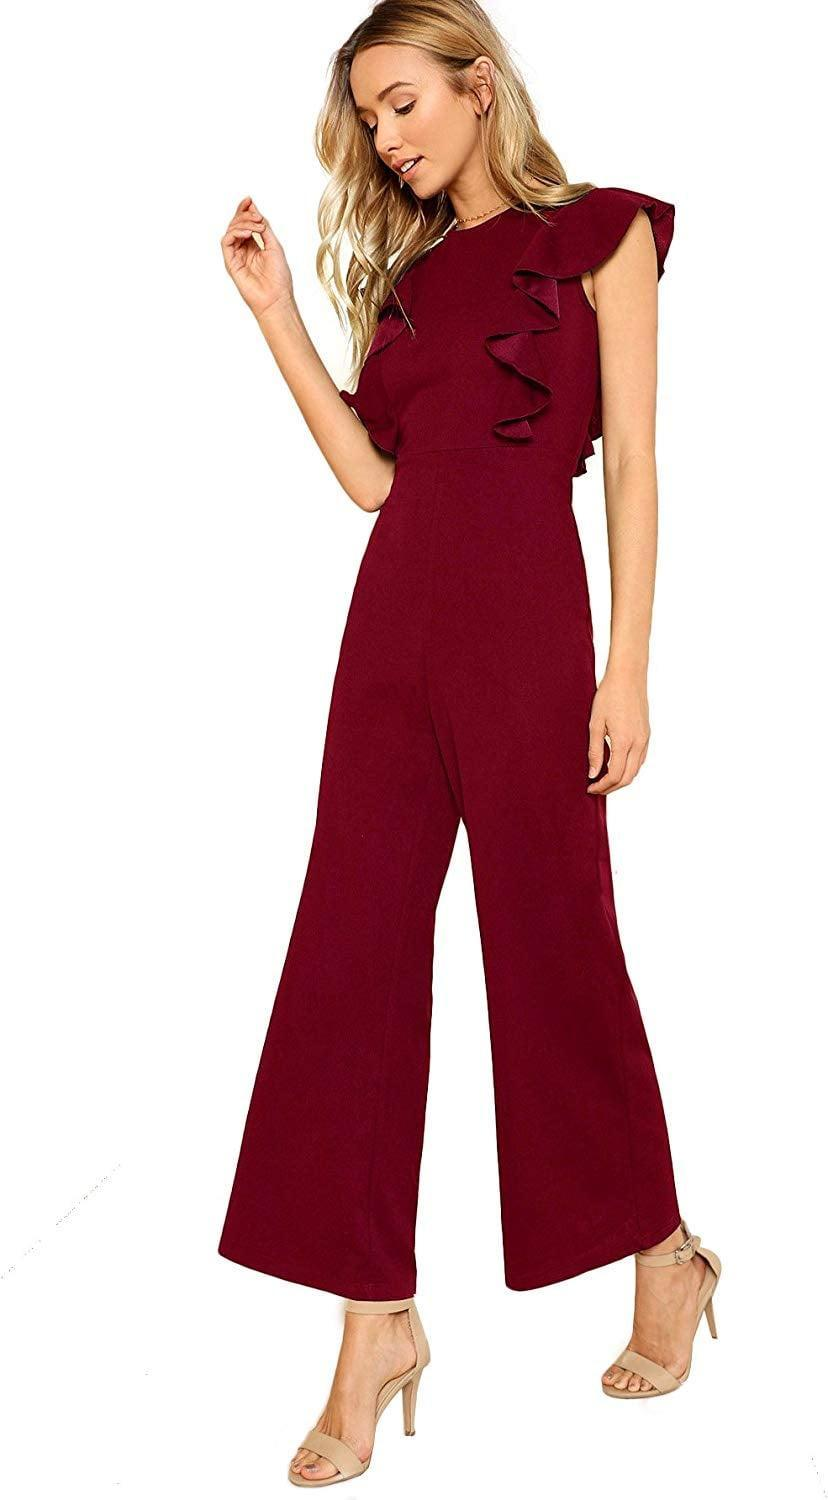 """<p>This <a href=""""https://www.popsugar.com/buy/Romwe-Ruffle-Trim-Jumpsuit-512877?p_name=Romwe%20Ruffle-Trim%20Jumpsuit&retailer=amazon.com&pid=512877&price=36&evar1=fab%3Aus&evar9=46859993&evar98=https%3A%2F%2Fwww.popsugar.com%2Ffashion%2Fphoto-gallery%2F46859993%2Fimage%2F46860956%2FRomwe-Ruffle-Trim-Jumpsuit&list1=shopping%2Camazon%2Choliday%2Cwinter%20fashion%2Choliday%20fashion%2C50%20under%20%2450%2Cgifts%20for%20women%2Caffordable%20shopping&prop13=mobile&pdata=1"""" rel=""""nofollow noopener"""" class=""""link rapid-noclick-resp"""" target=""""_blank"""" data-ylk=""""slk:Romwe Ruffle-Trim Jumpsuit"""">Romwe Ruffle-Trim Jumpsuit</a> ($36) is a fun dress alternative.</p>"""